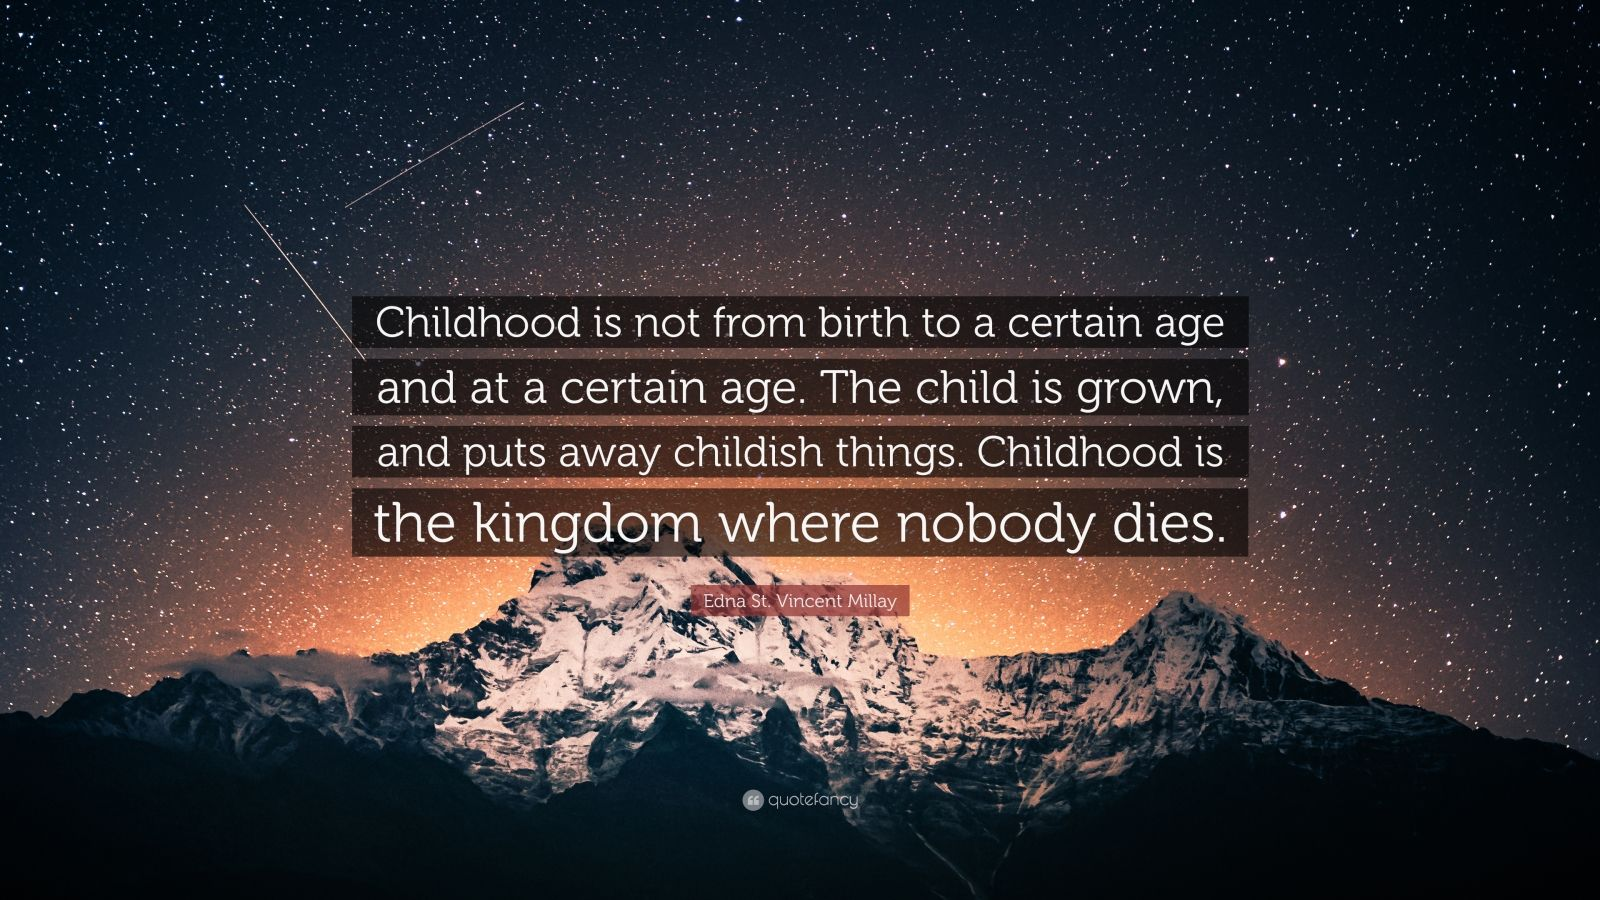 """Edna St. Vincent Millay Quote: """"Childhood is not from birth to a certain age and at a certain age. The child is grown, and puts away childish things. Childhood is the kingdom where nobody dies."""""""